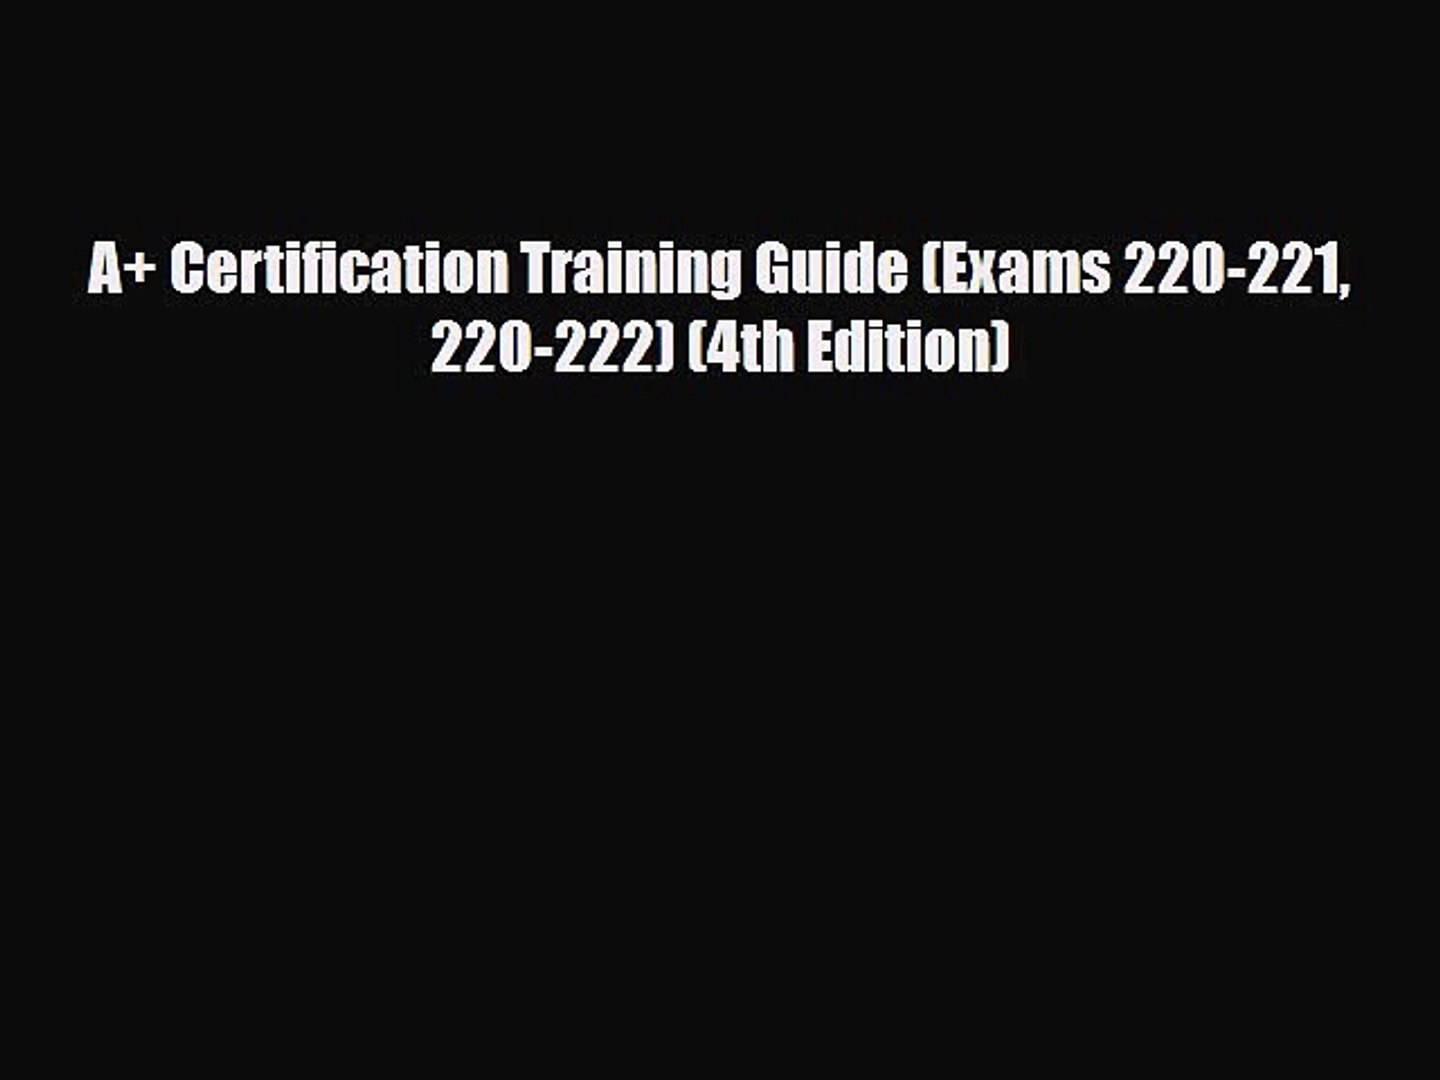 PDF A+ Certification Training Guide (Exams 220-221 220-222) (4th Edition) Free Books